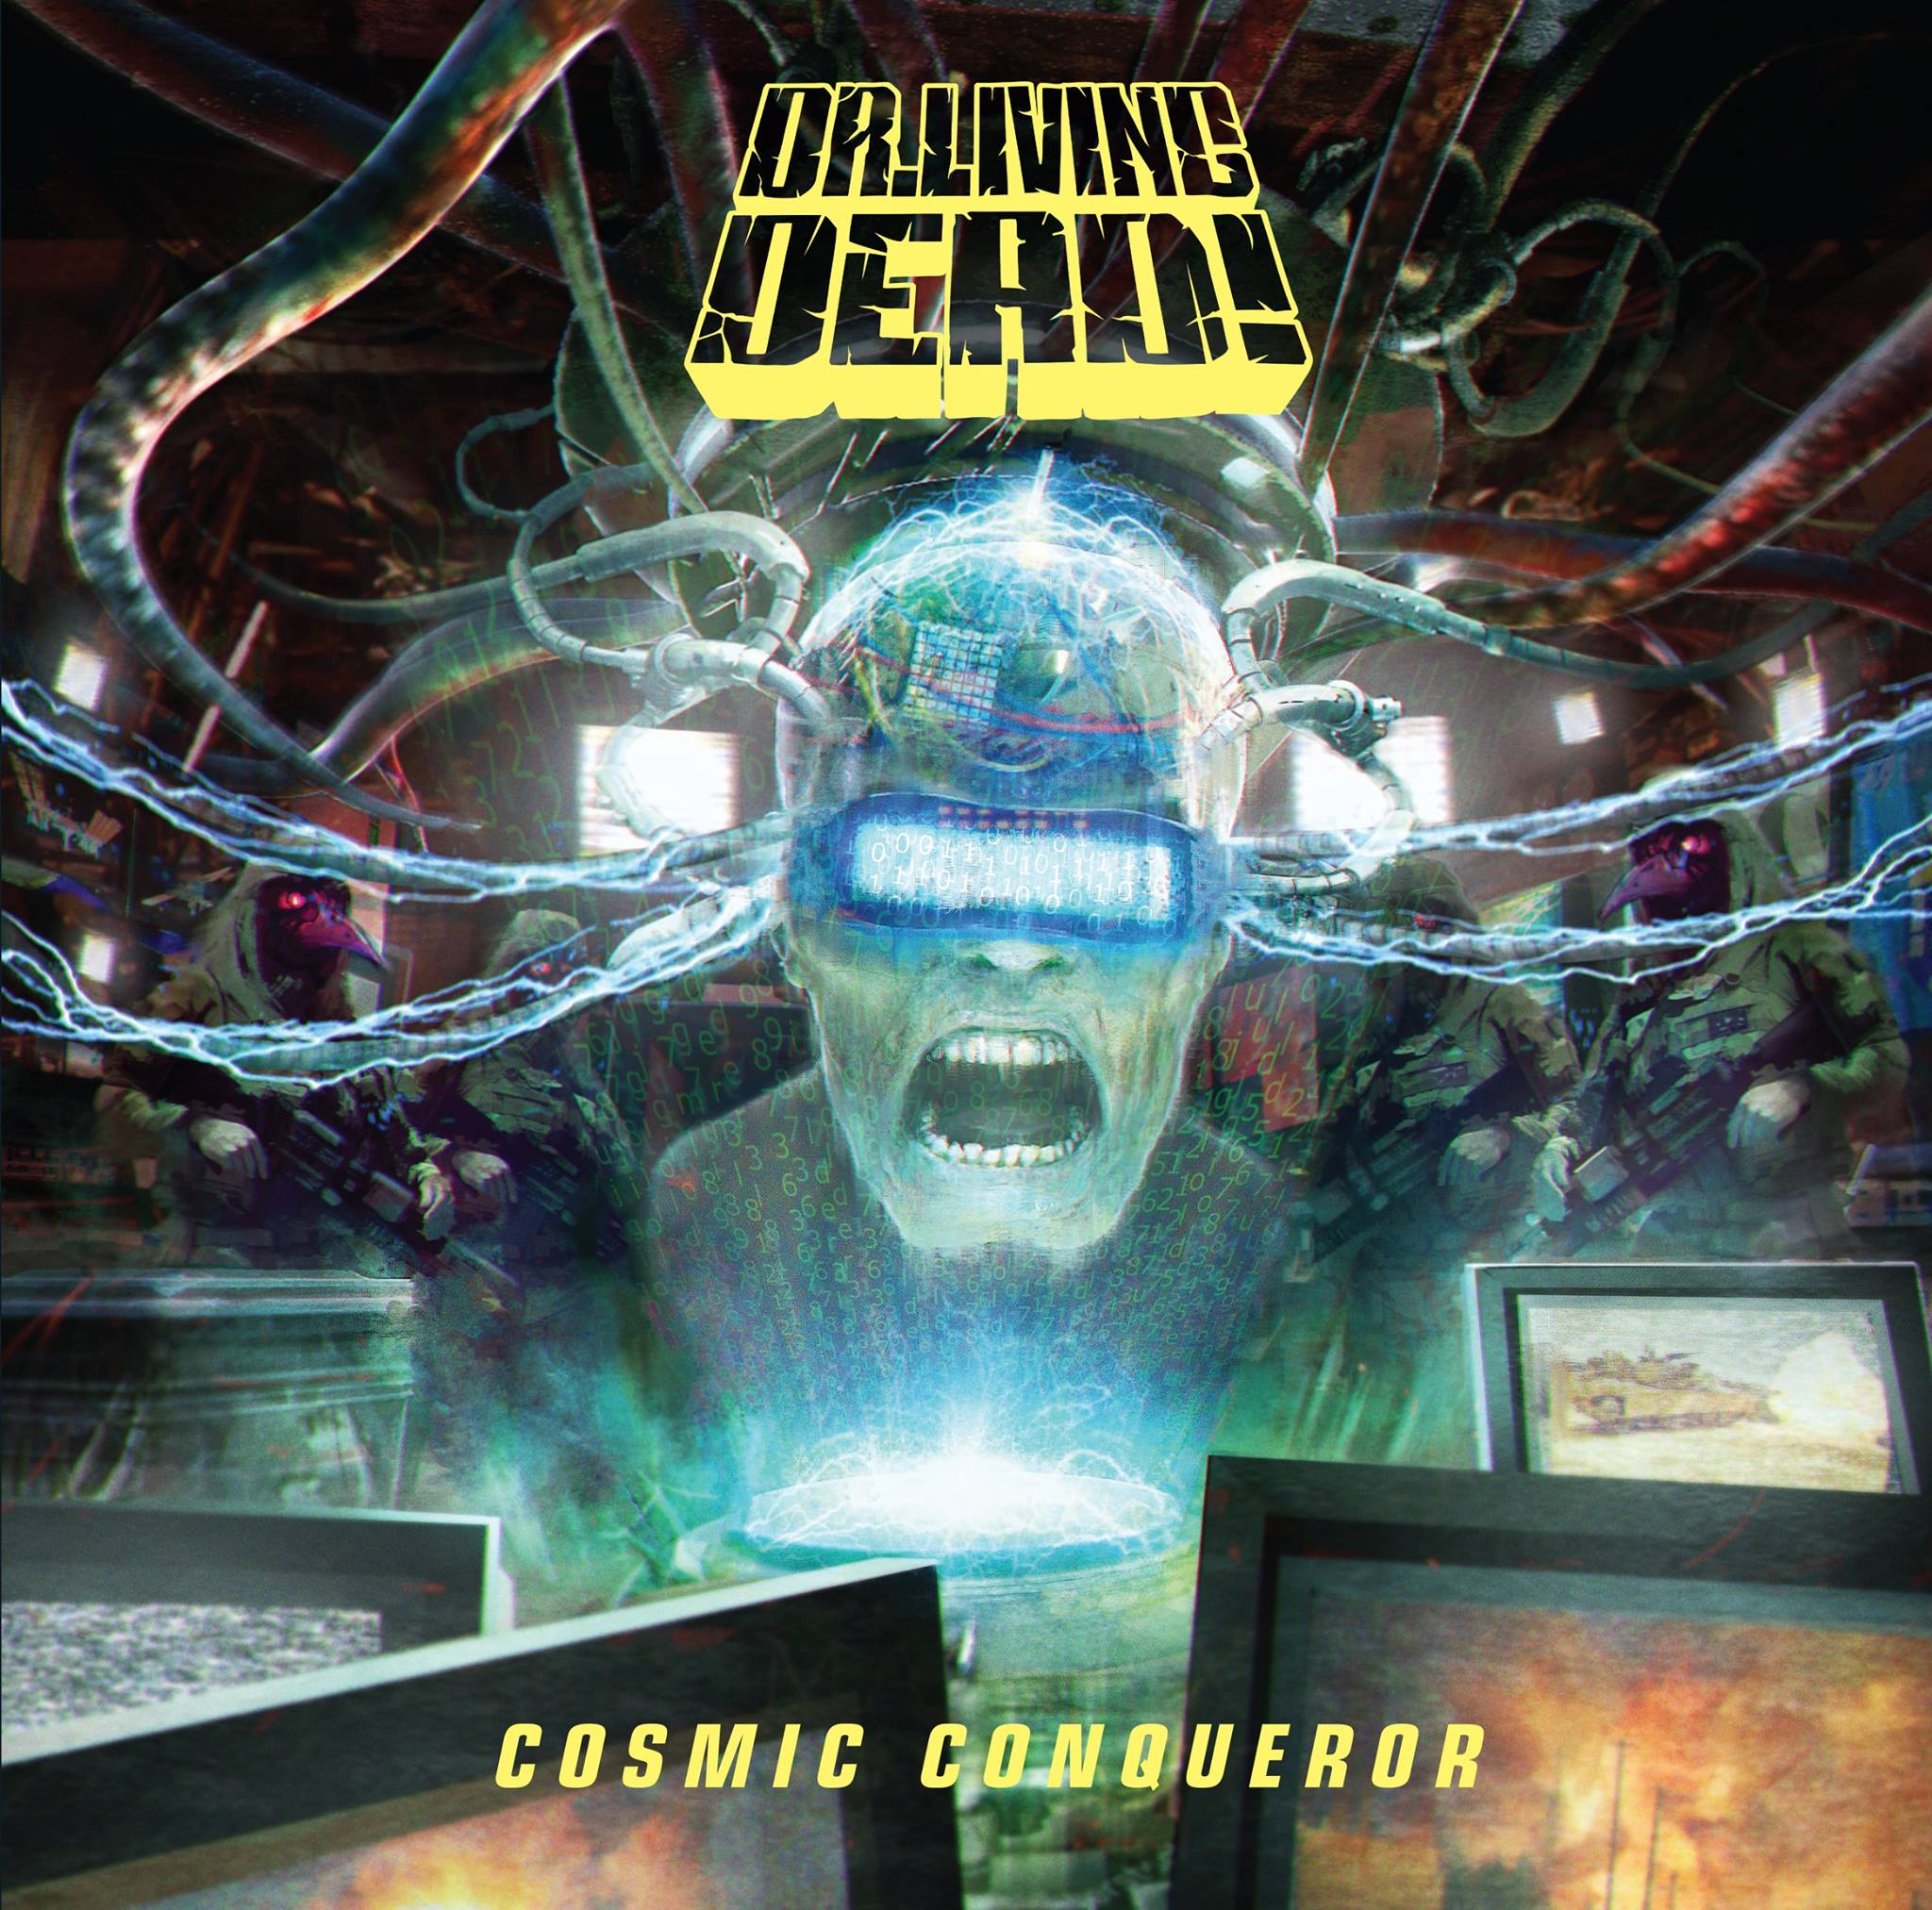 Dr Living Dead – Cosmic Conqueror Album Review